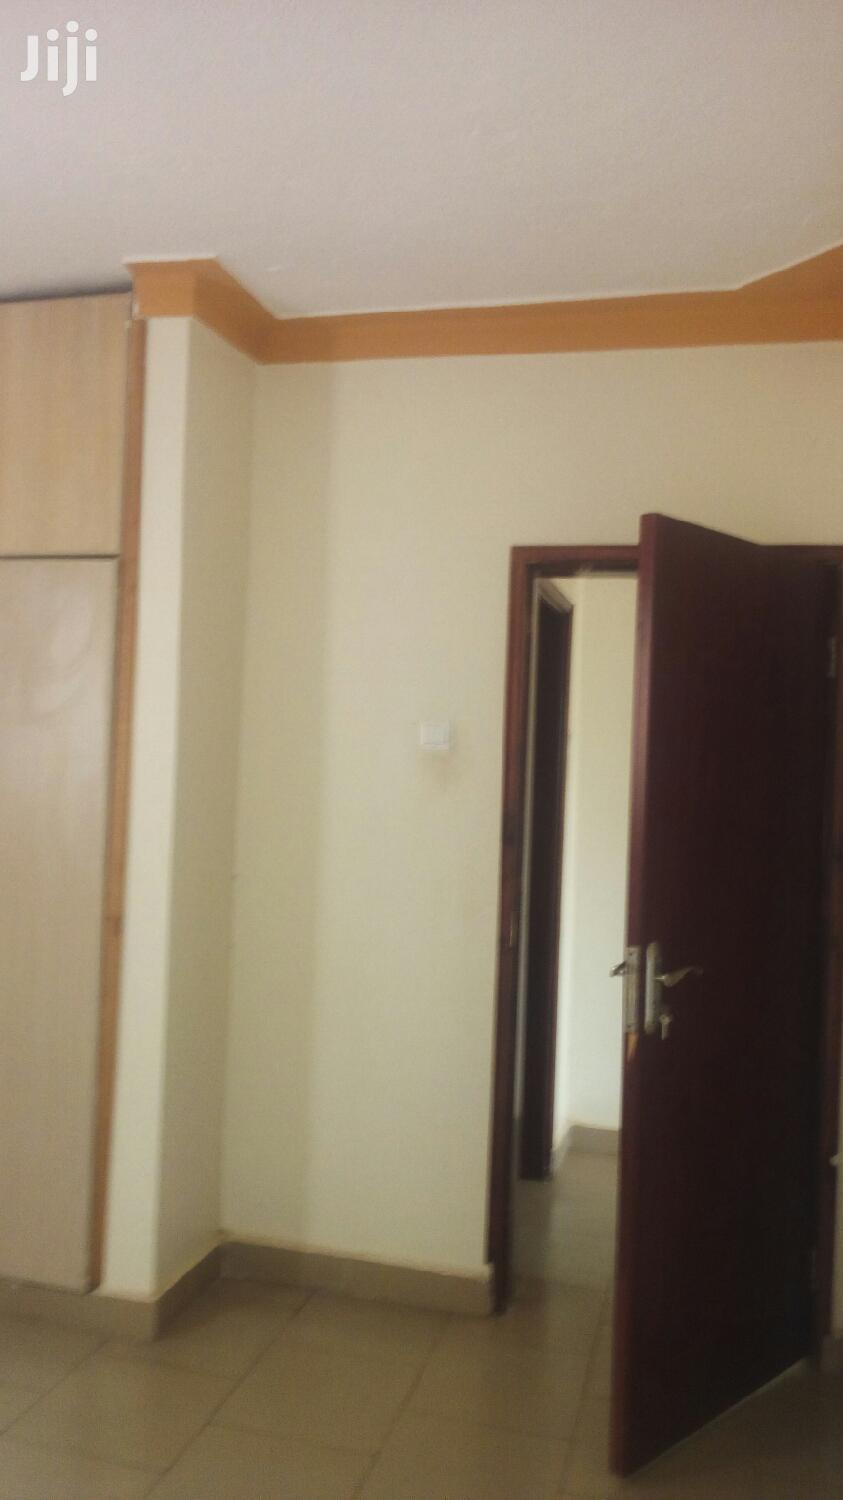 Double Room Apartment In Kyaliwajjala Along Kira Road For Rent   Houses & Apartments For Rent for sale in Kampala, Uganda